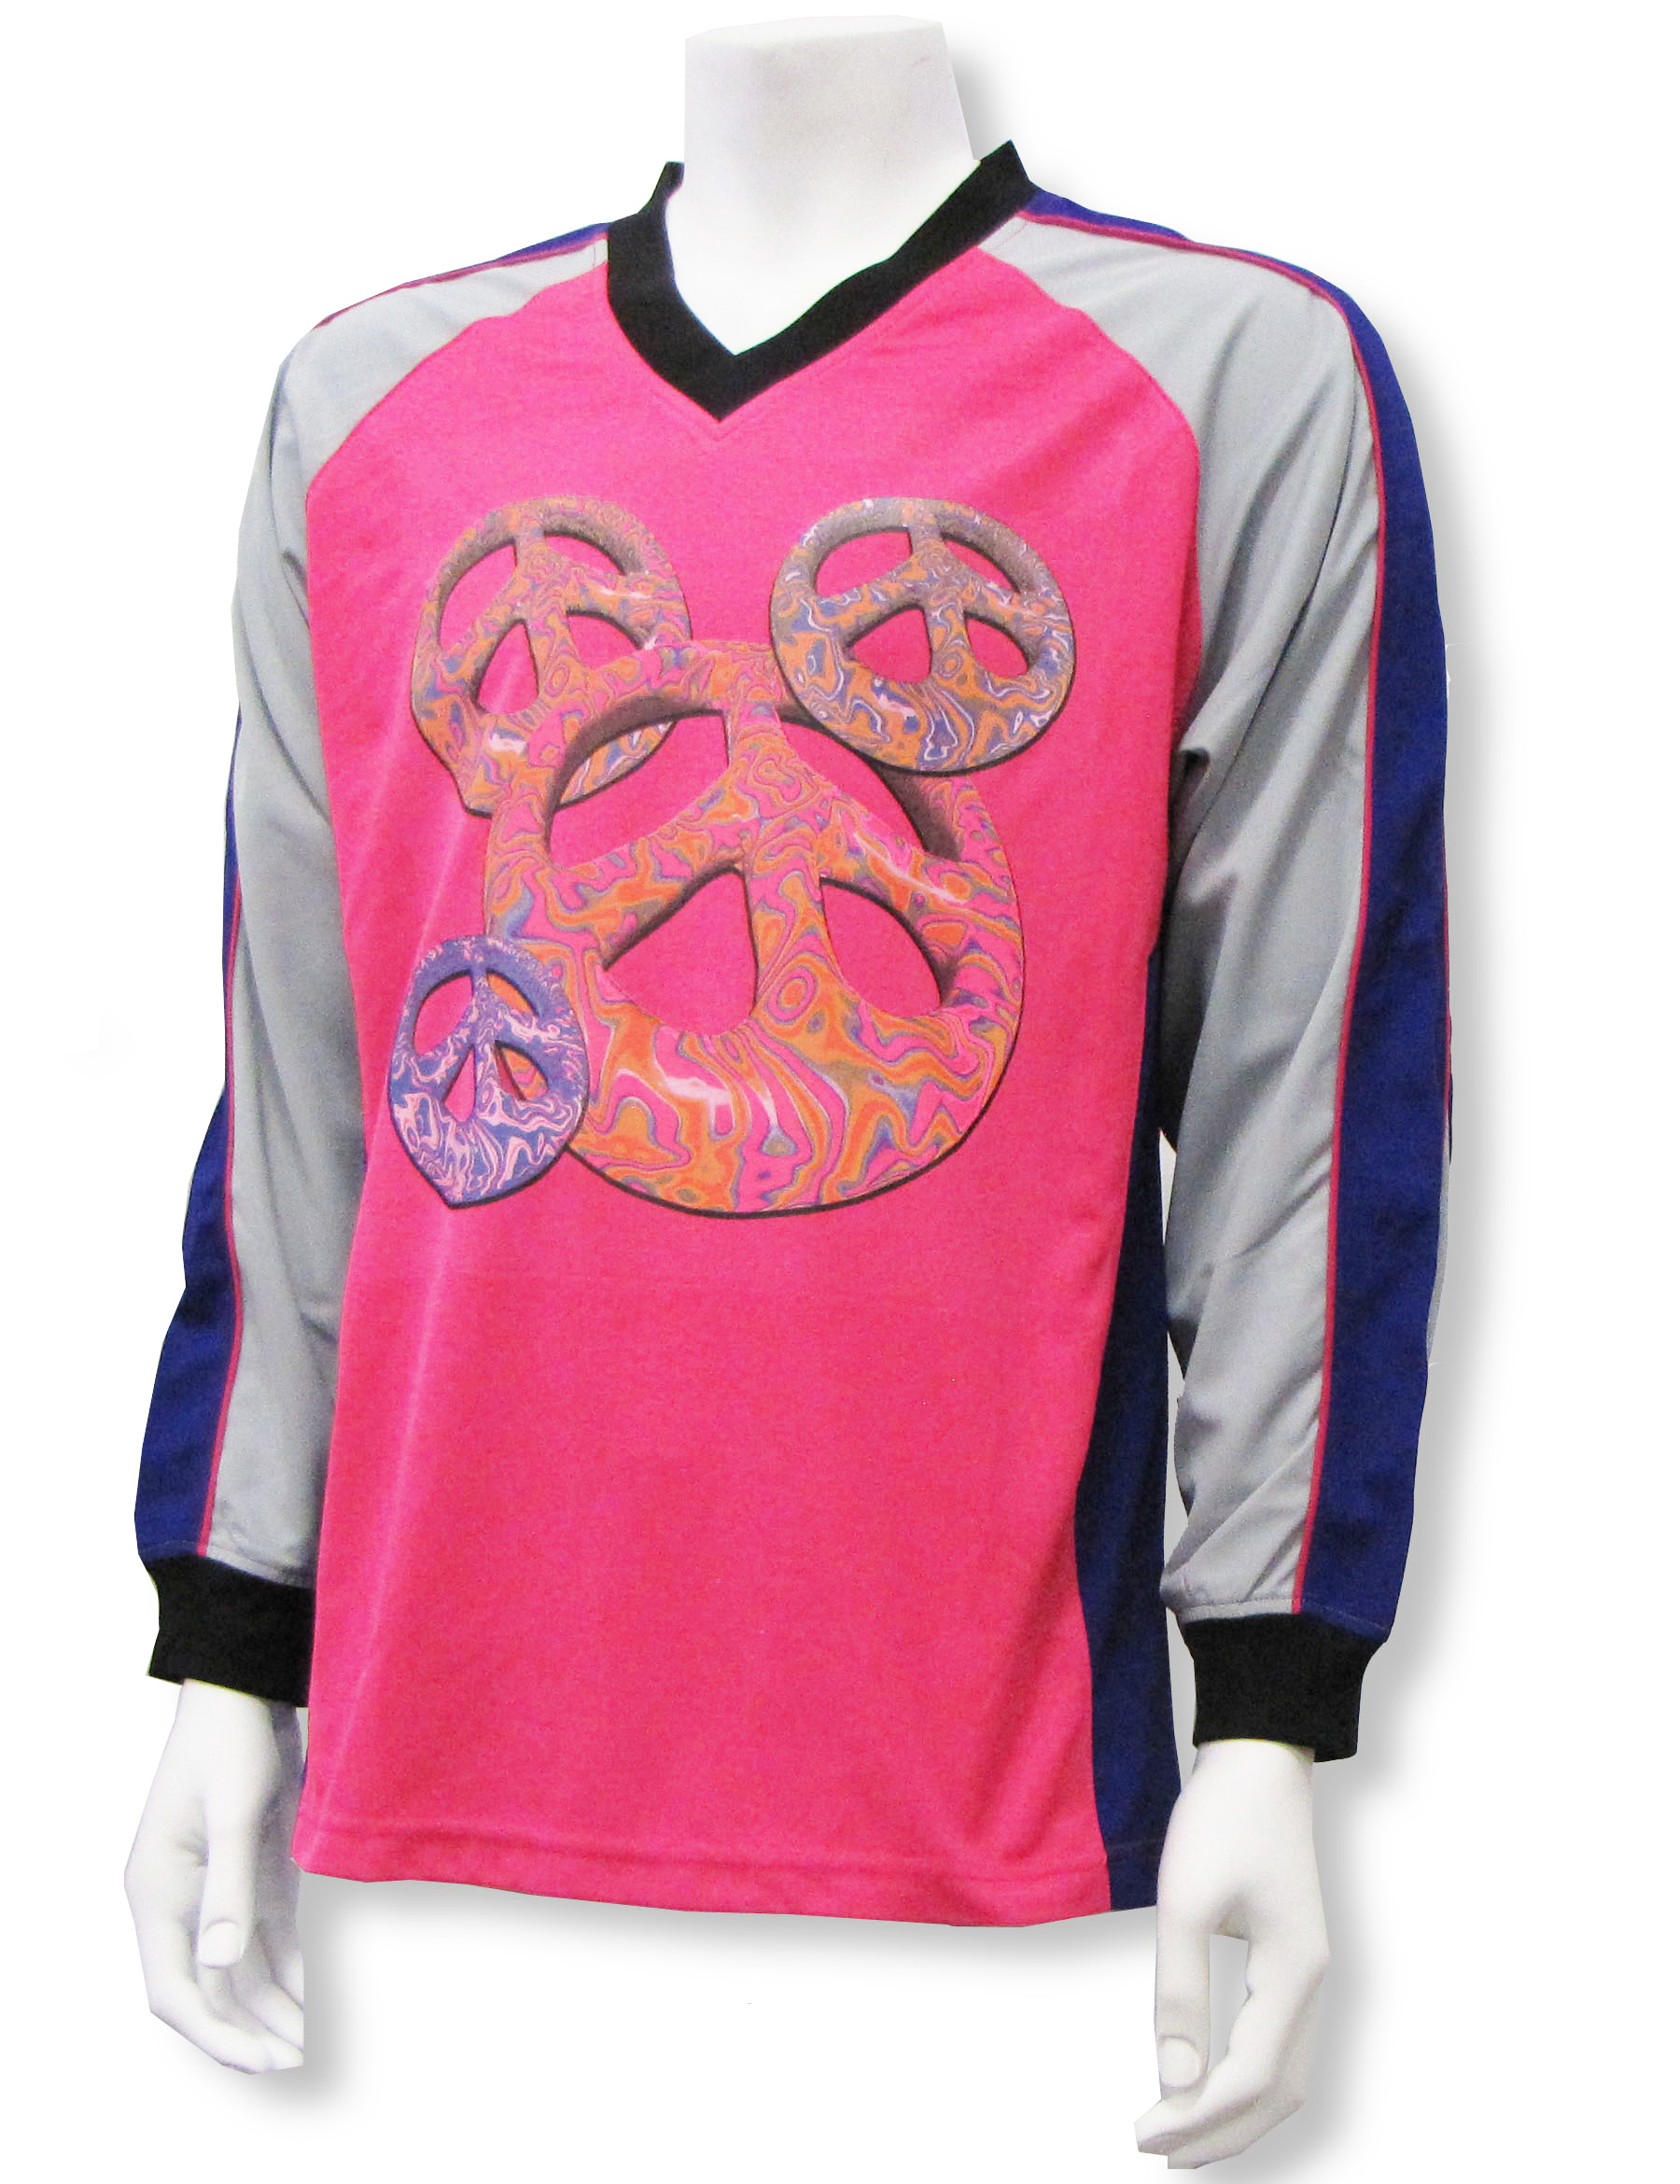 Peace Symbol soccer goalie jersey by Code Four Athletics